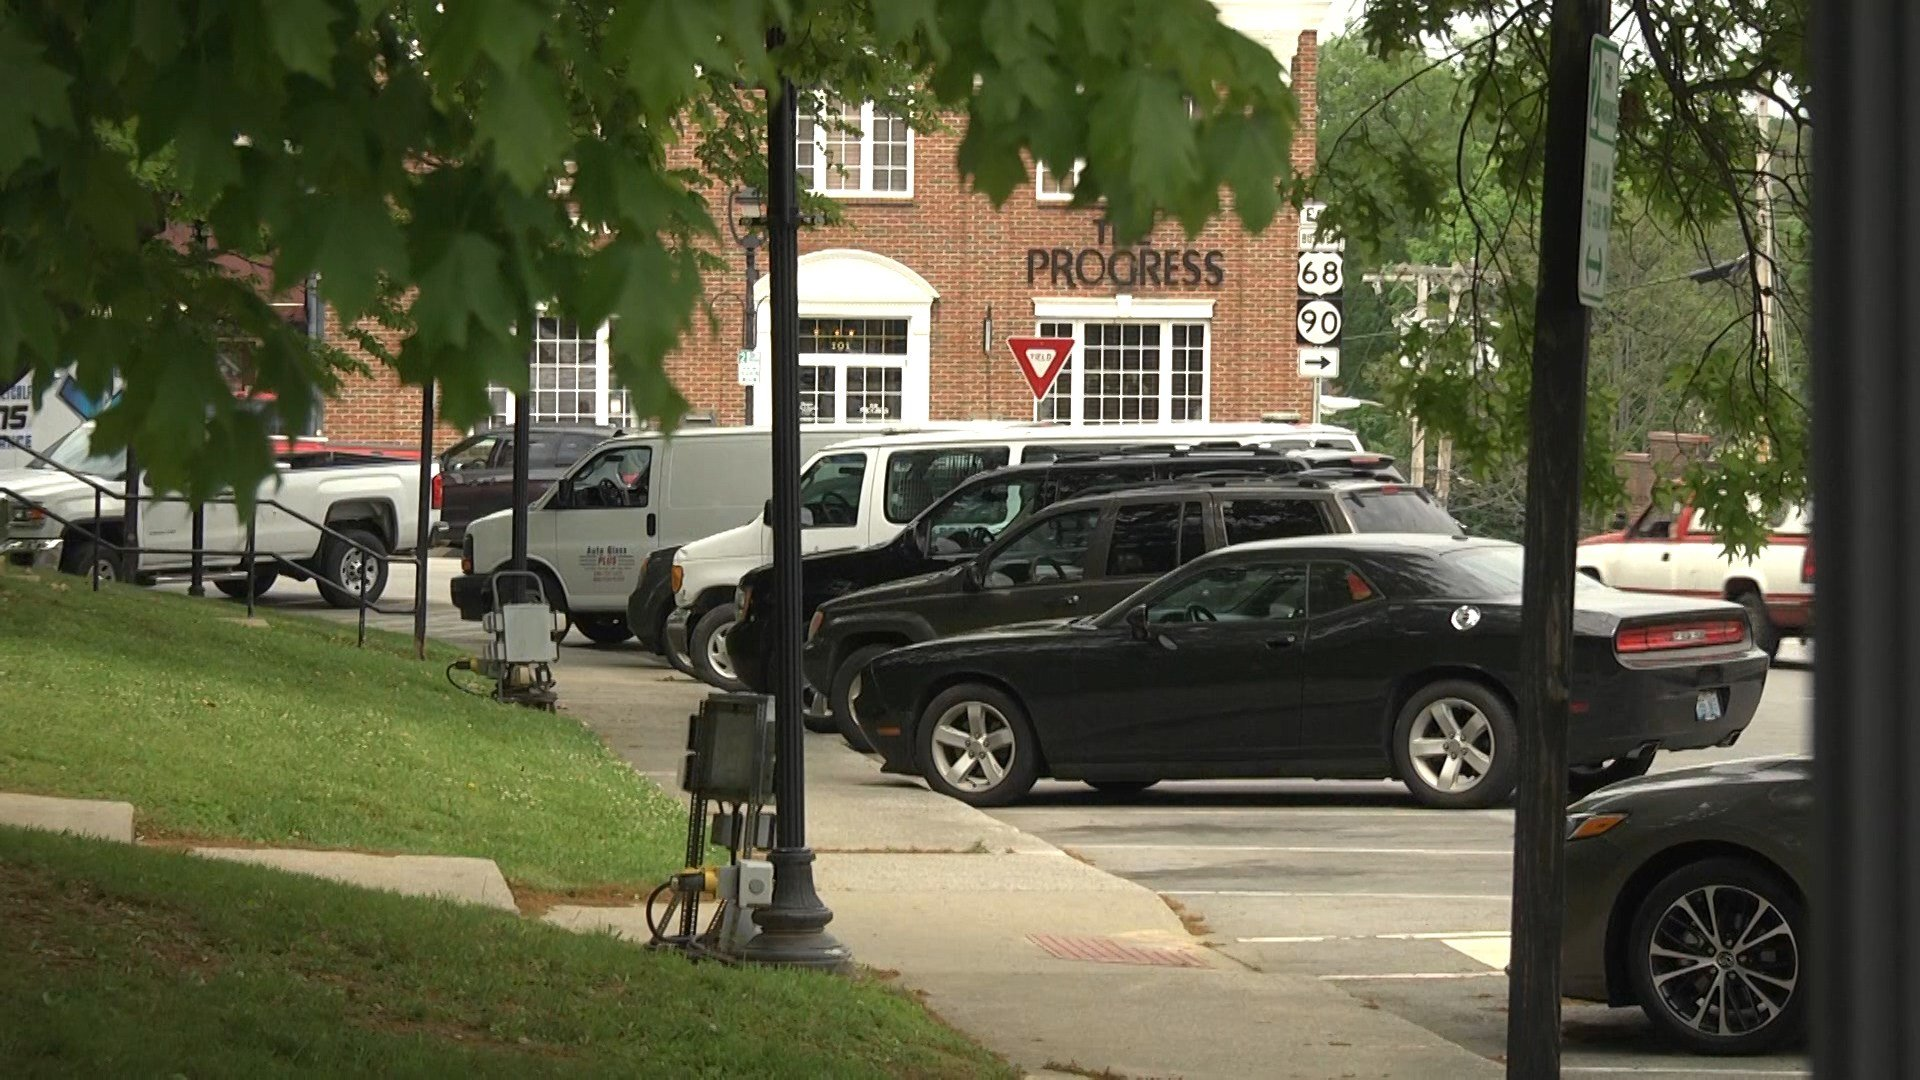 Parking ticket fees increase in downtown Glasgow - WNKY com